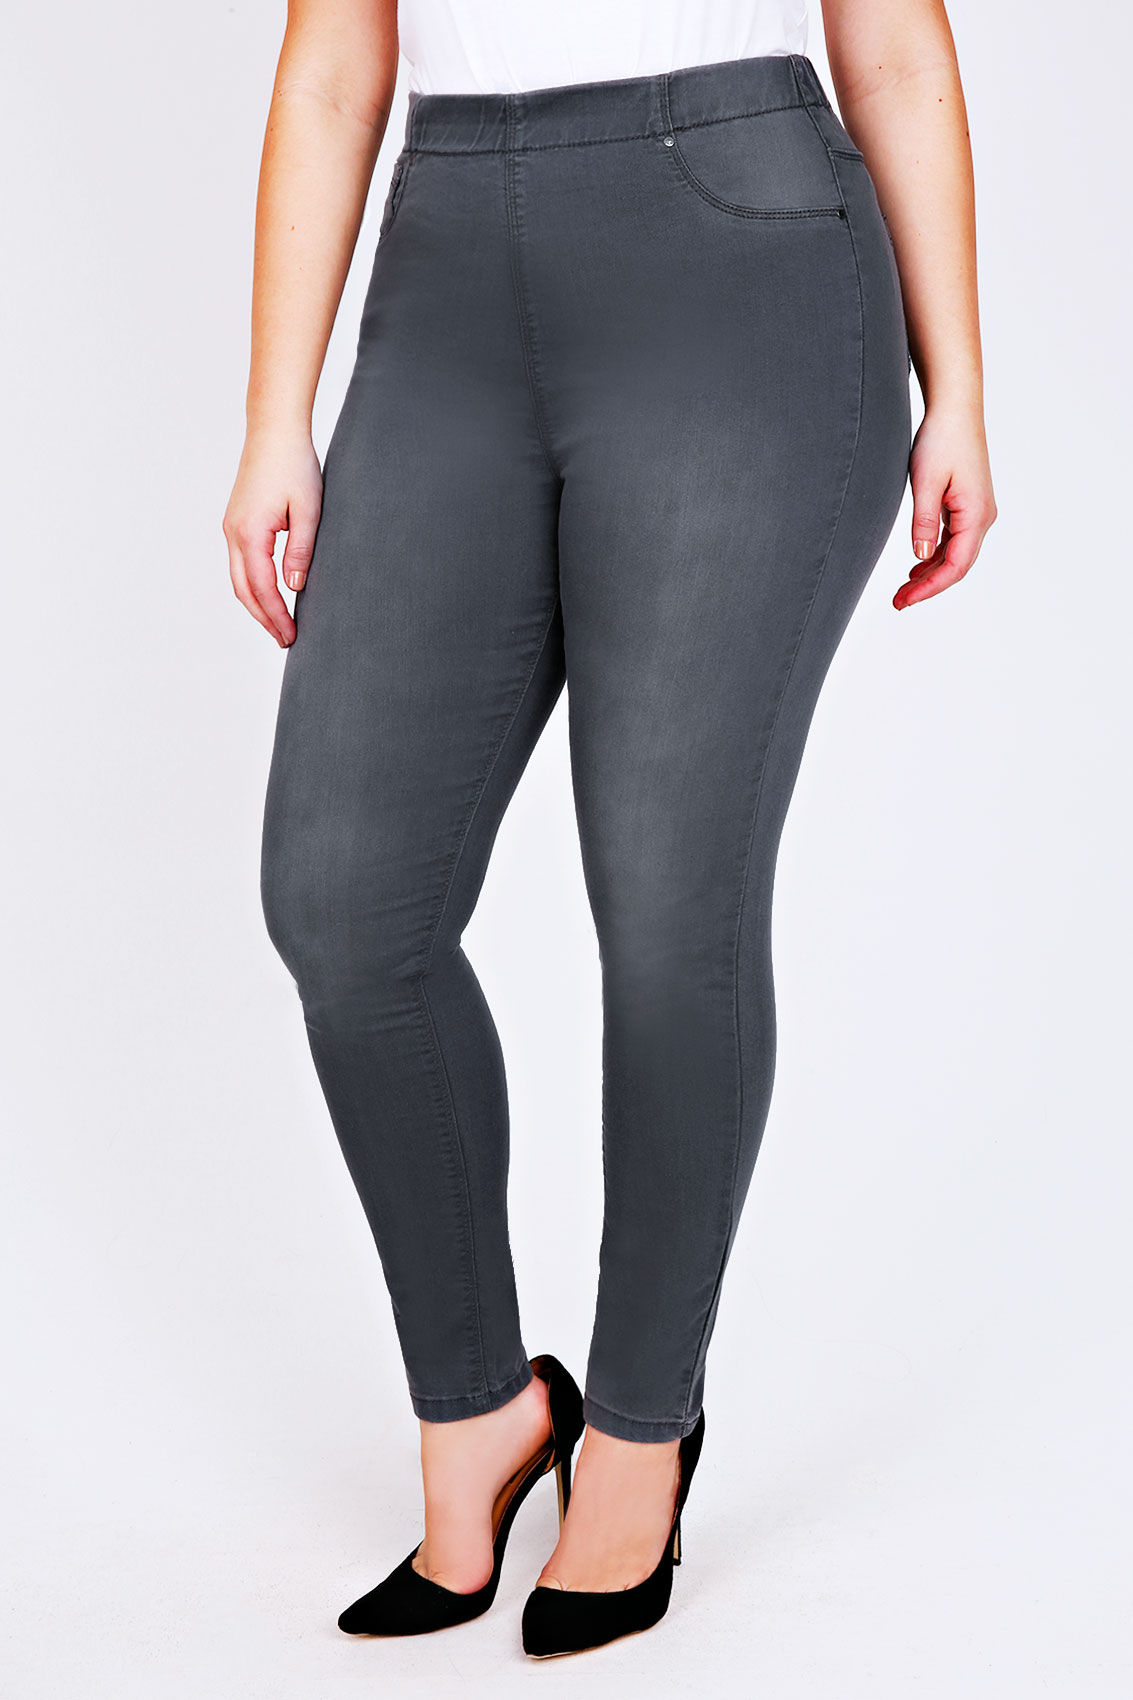 Jeggings / ˈ dʒ ɛ ɡ ɪ ŋ z / are leggings that are made to look like skin-tight denim jeans. The word is a portmanteau of the words jeans and leggings.